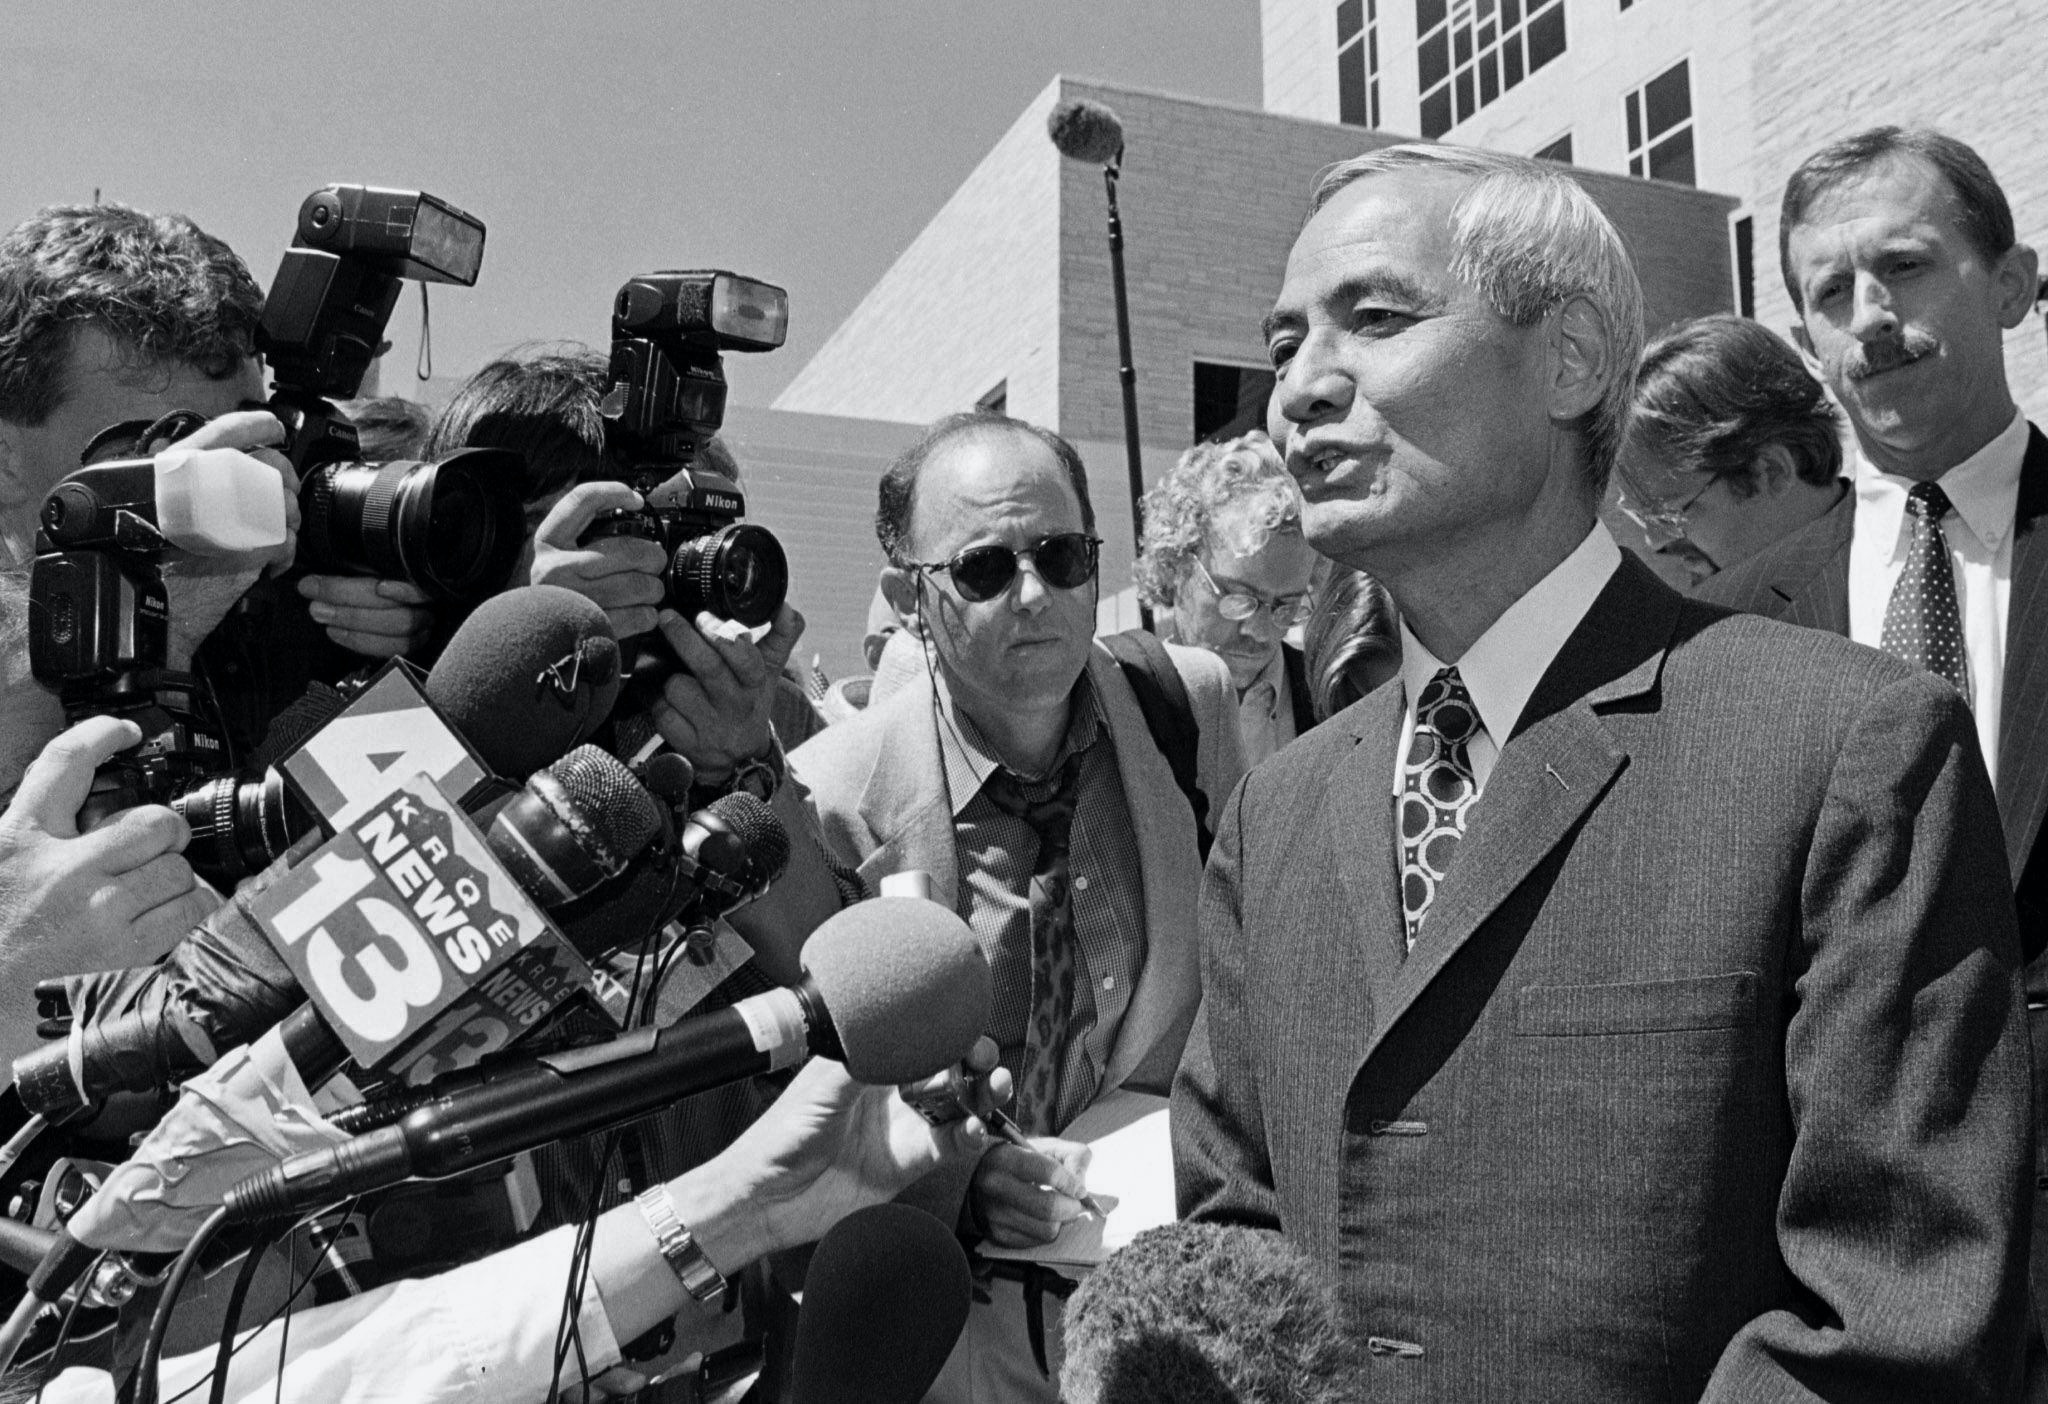 Former Los Alamos nuclear scientist Wen Ho Lee (R front) addresses the media outside the Federal Courthouse after he was freed from nine months of solitary confinement, 13 September 2000, in Albuquerque, New Mexico. US District Court Judge James Parker ordered the 60-year-old Taiwan-born scientist freed in a plea bargain in which Lee pleaded guilty to one felony count of downloading nuclear weapons design secrets to a non-secure computer at the Los Alamos laboratory.